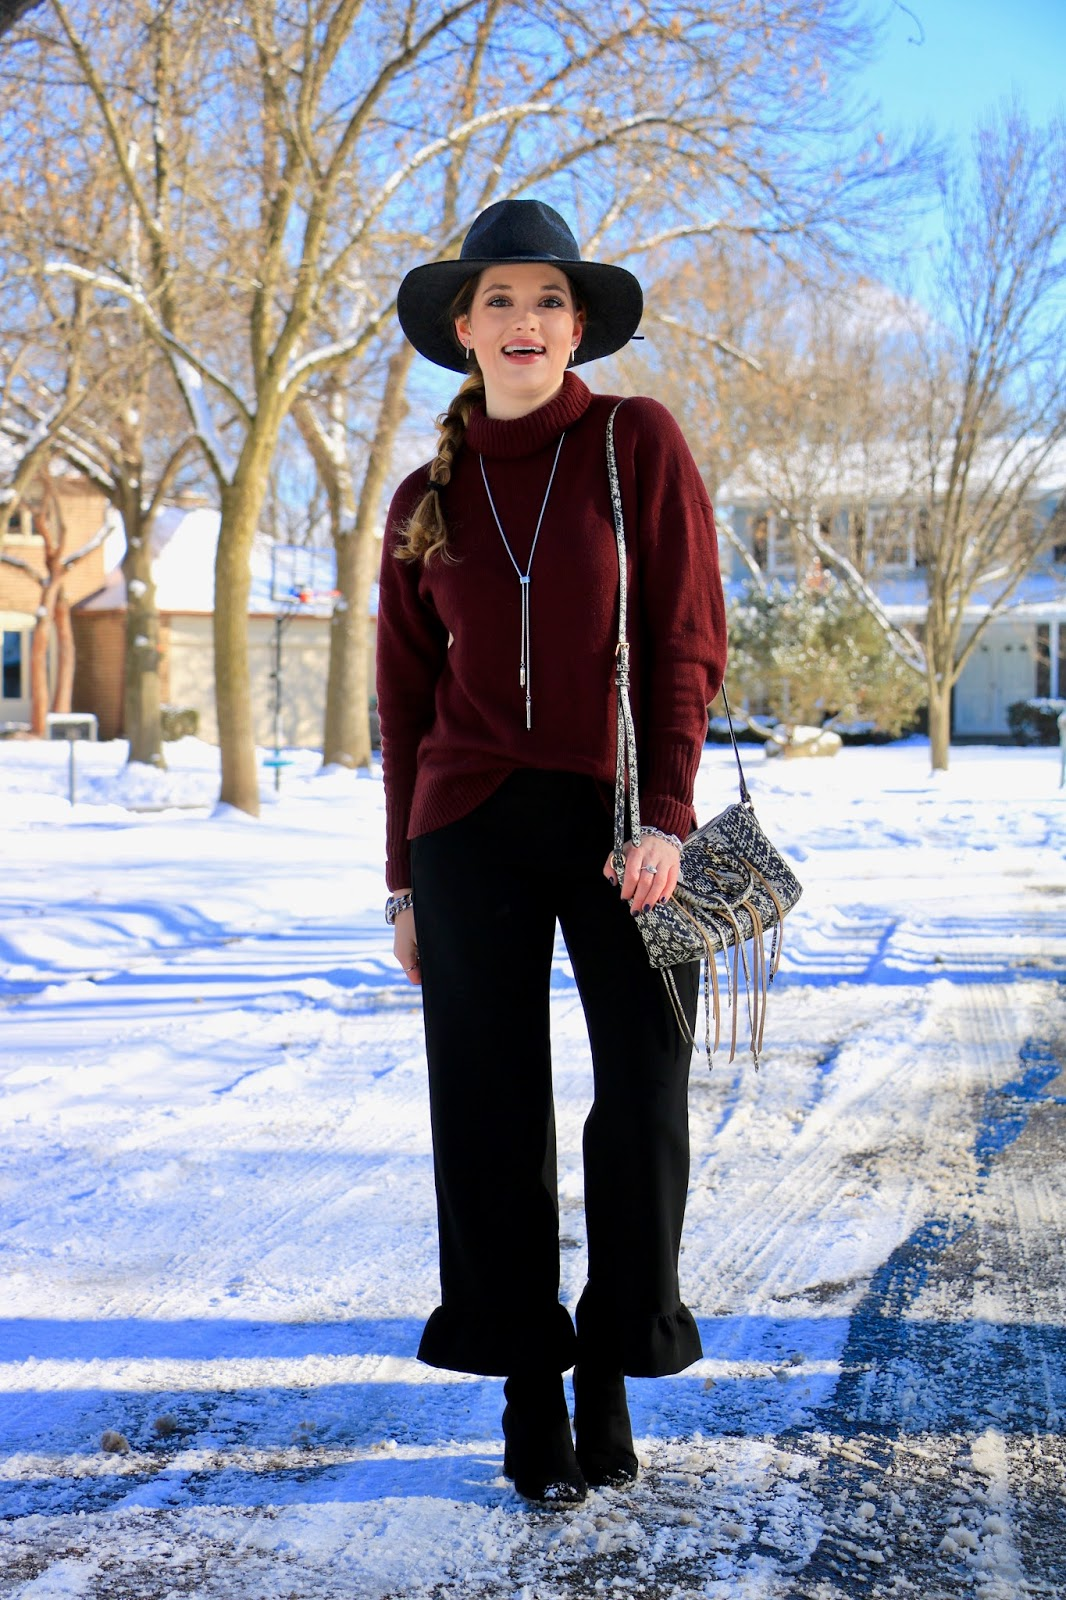 Nyc fashion blogger Kathleen Harper showing how to wear ruffle-hem pants